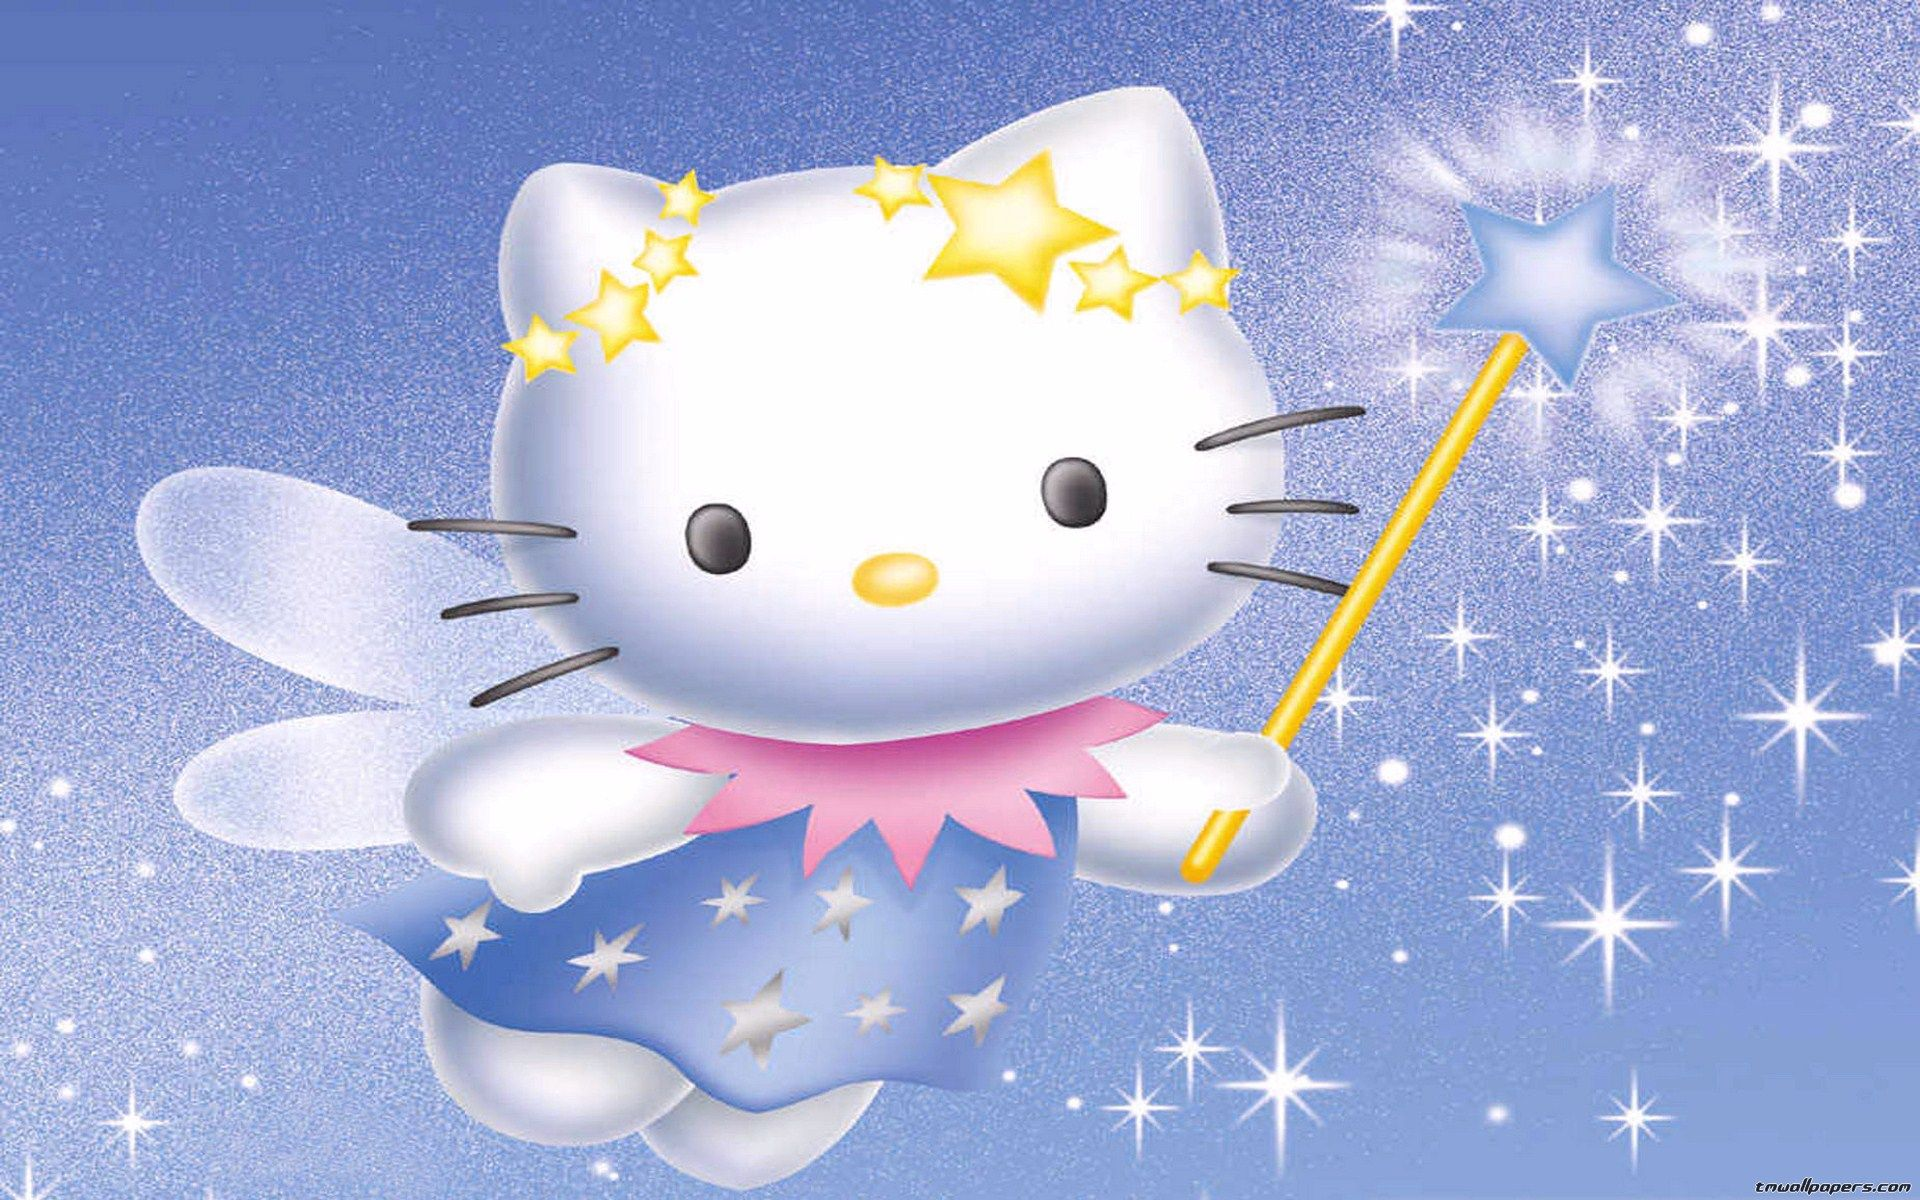 Cool Wallpaper Hello Kitty Sky Blue - 2a17625ee72c24648bf23aafc164fcc8  Picture_729329.jpg